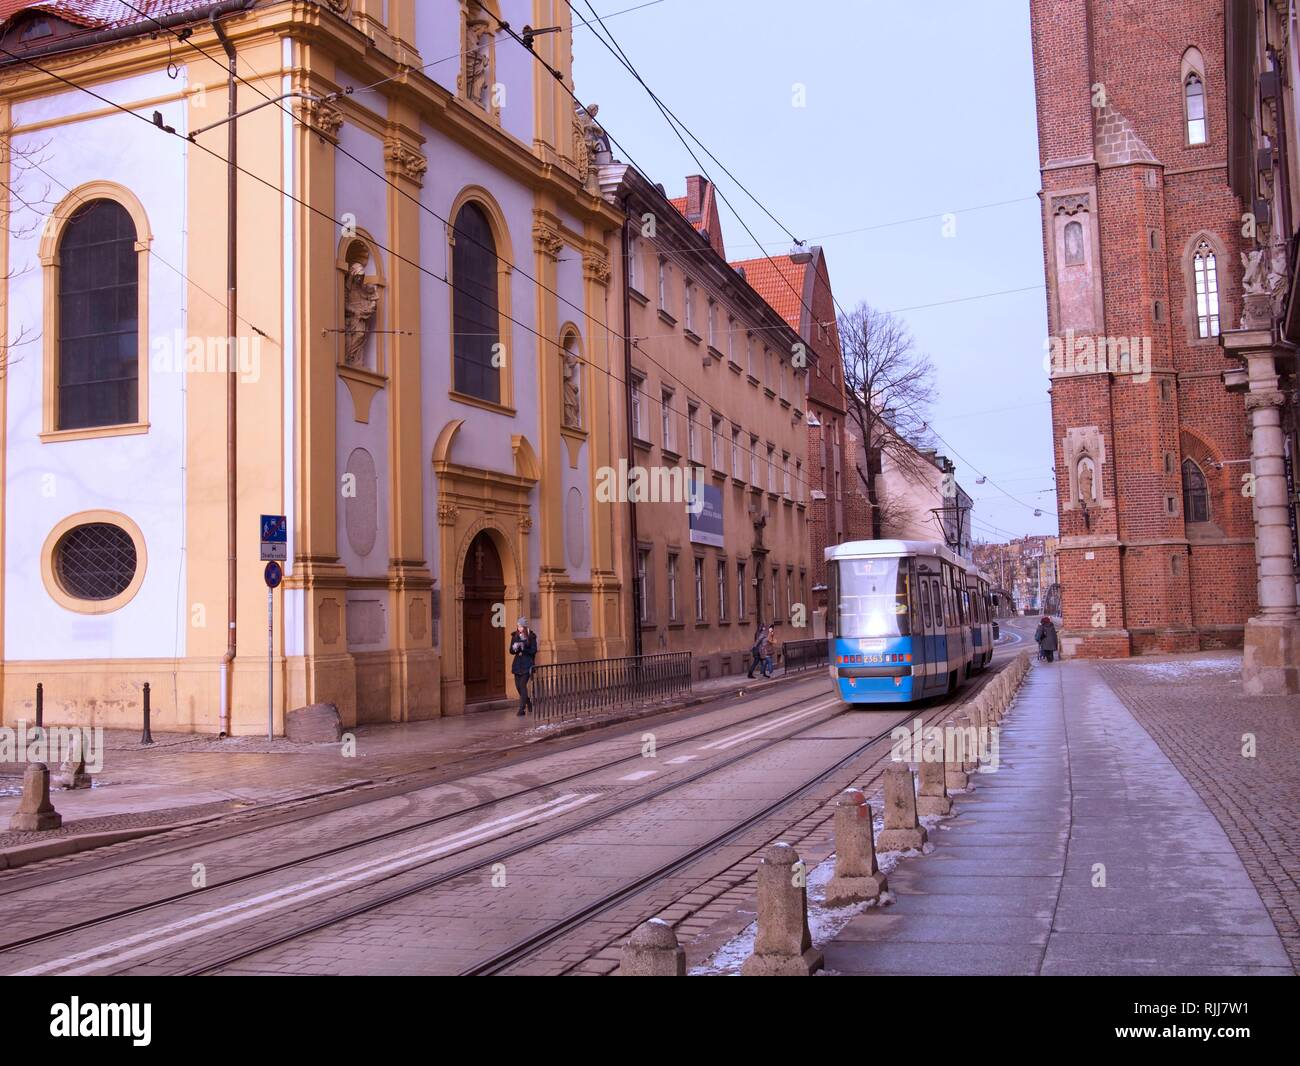 Wintry landscape with snow on the ground and electric train or tram passing. Stock Photo